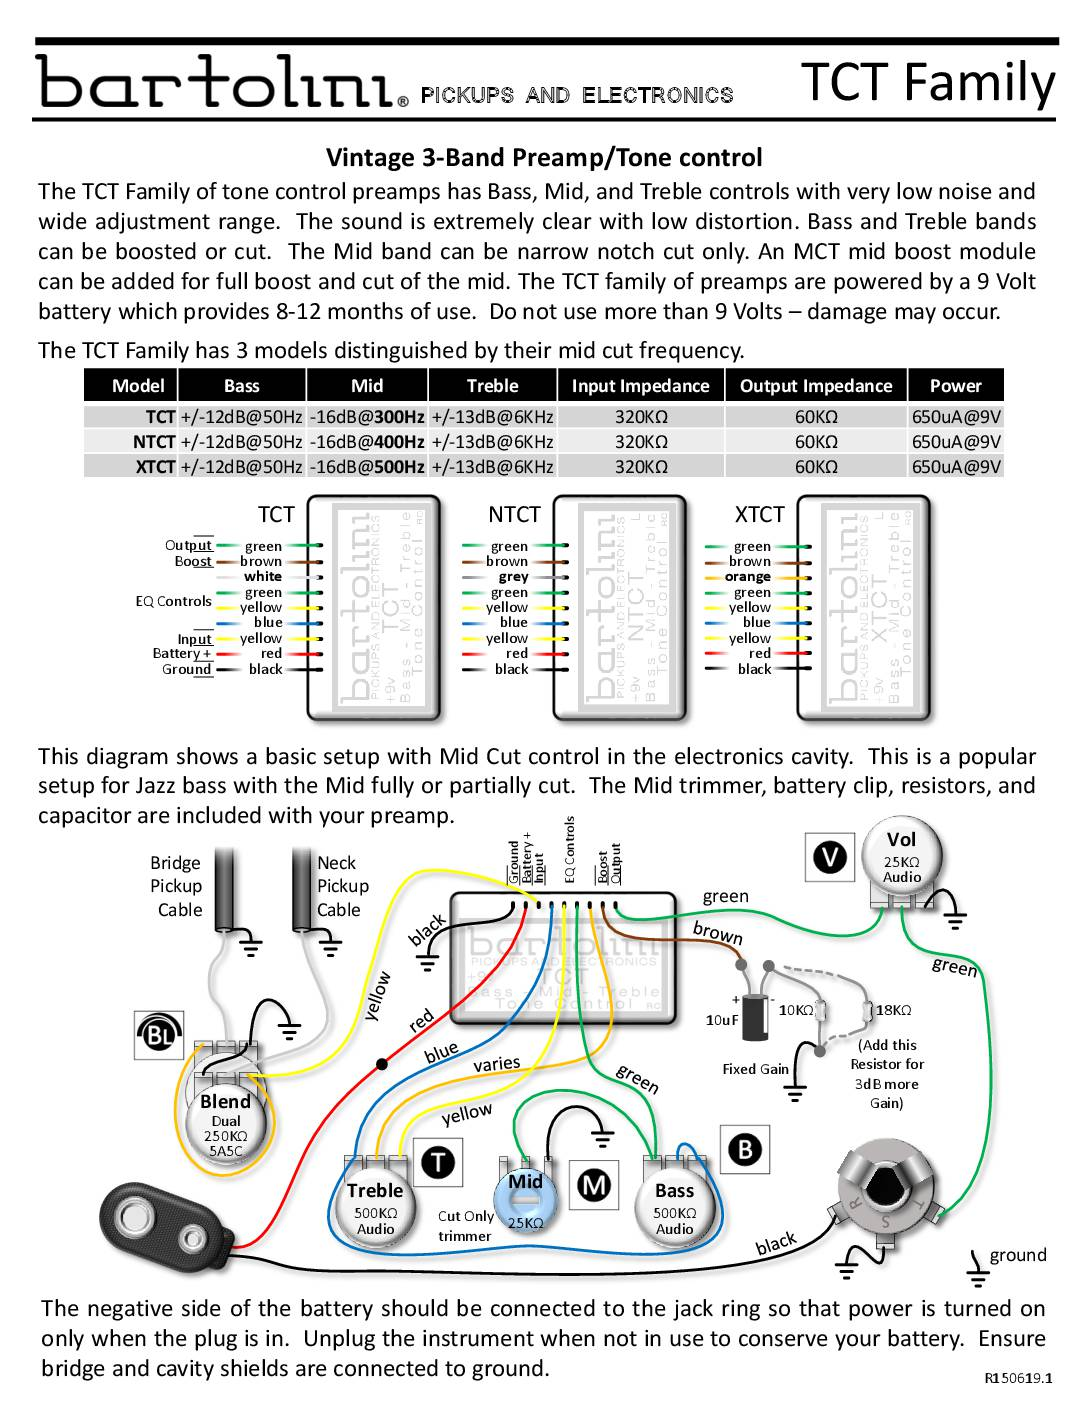 B Guitar Wiring Diagram Htm on guitar wiring theory, guitar made out of a box, guitar electronics wiring, guitar brands a-z, guitar switch wiring, guitar repair tips, guitar wiring harness, guitar on ground, guitar parts diagram, guitar dimensions, guitar wiring for dummies, guitar circuit diagram, guitar tone control wiring, guitar amp diagram, guitar wiring basics, guitar jack wiring, guitar potentiometer wiring, guitar schematics, guitar wiring 101,